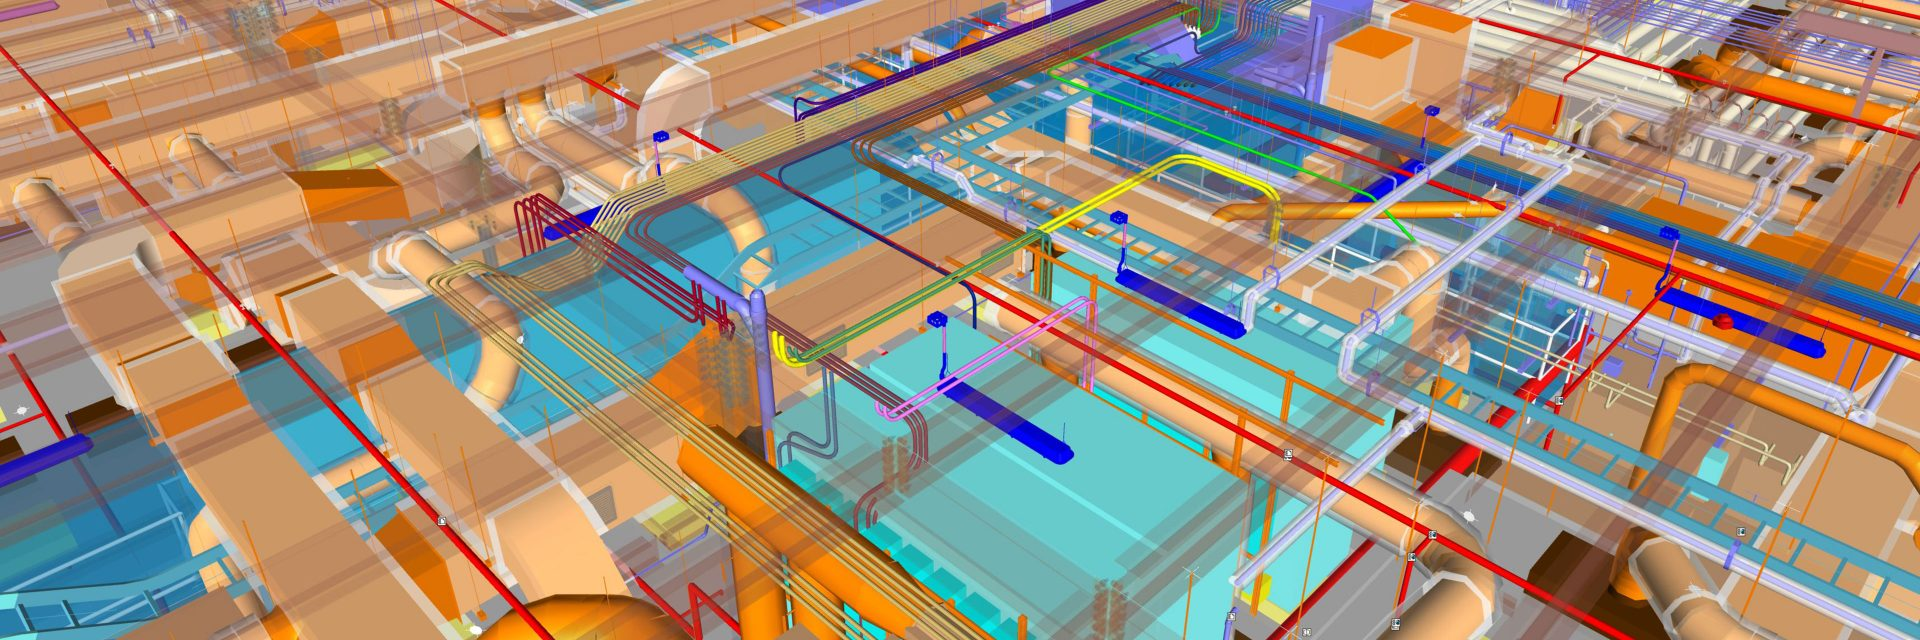 A building information model color coded to show piping, framing and mechanical systems.